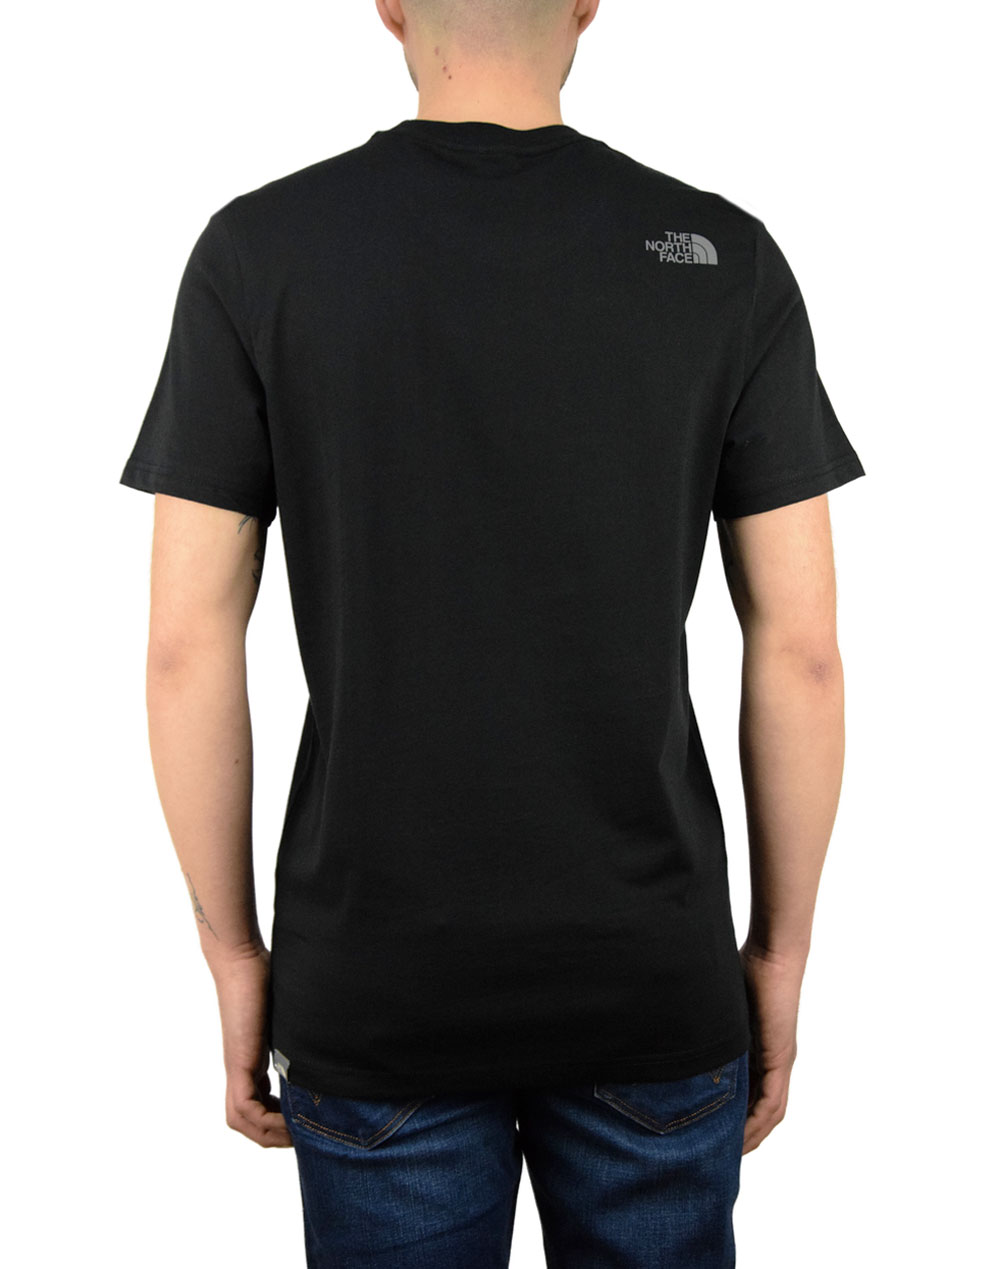 The North Face Easy Tee (NF0A2TX3JK31) Black